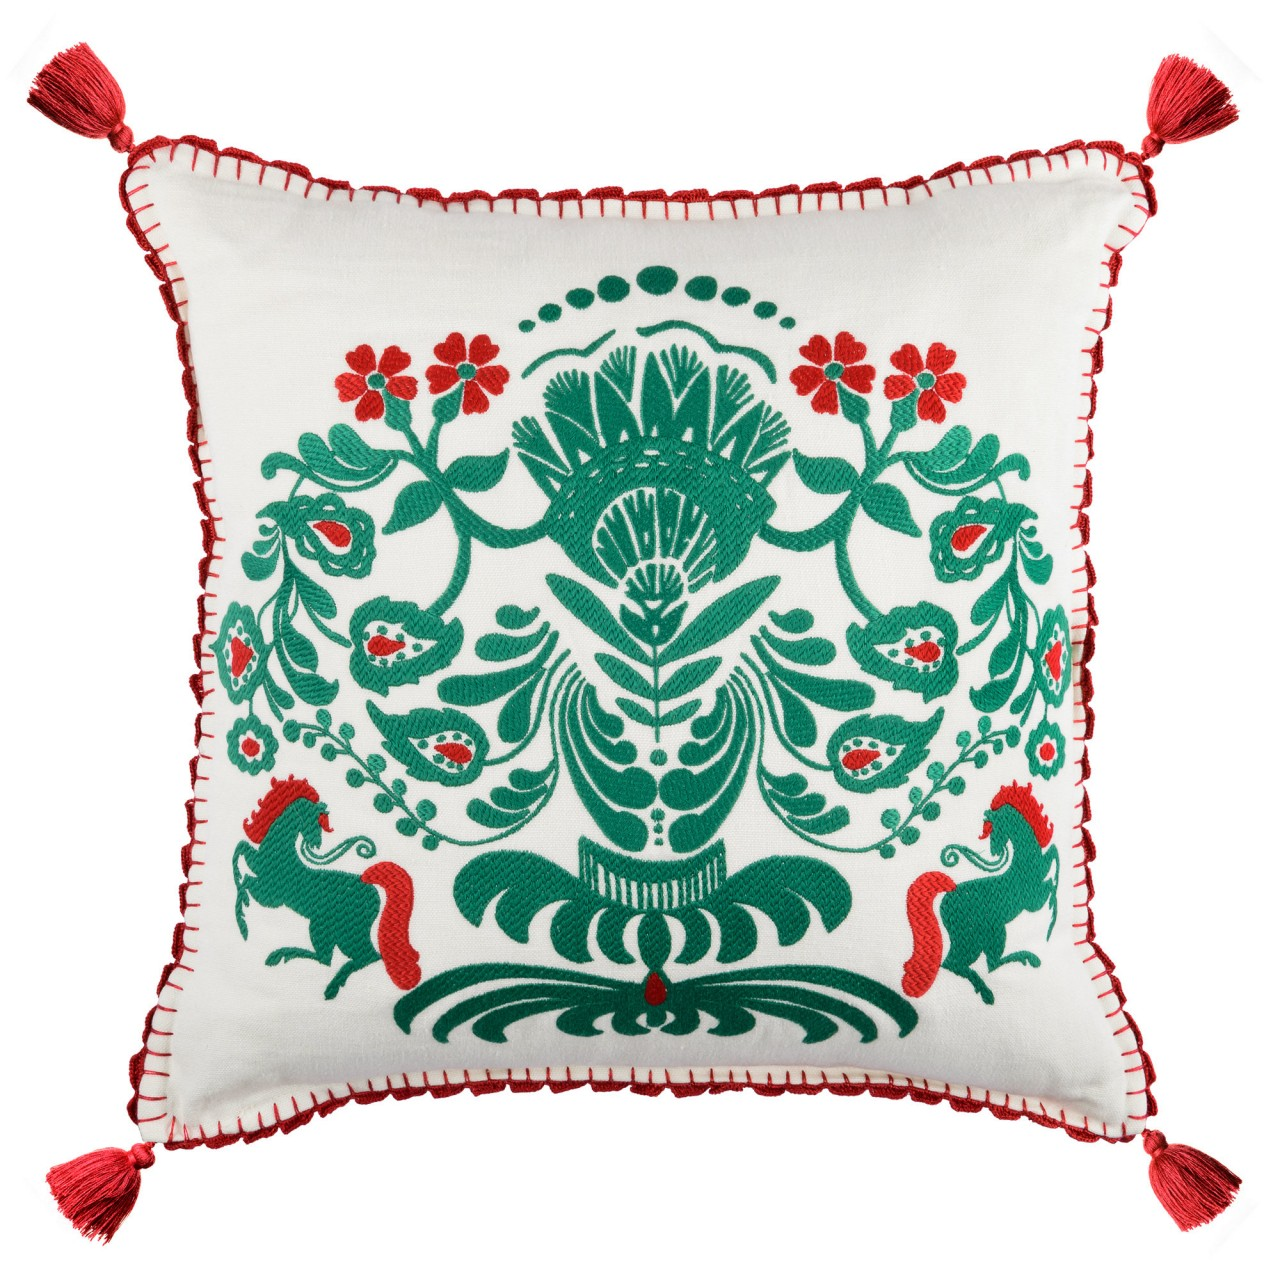 HORSE PARADE Linen Embroidered Cushion